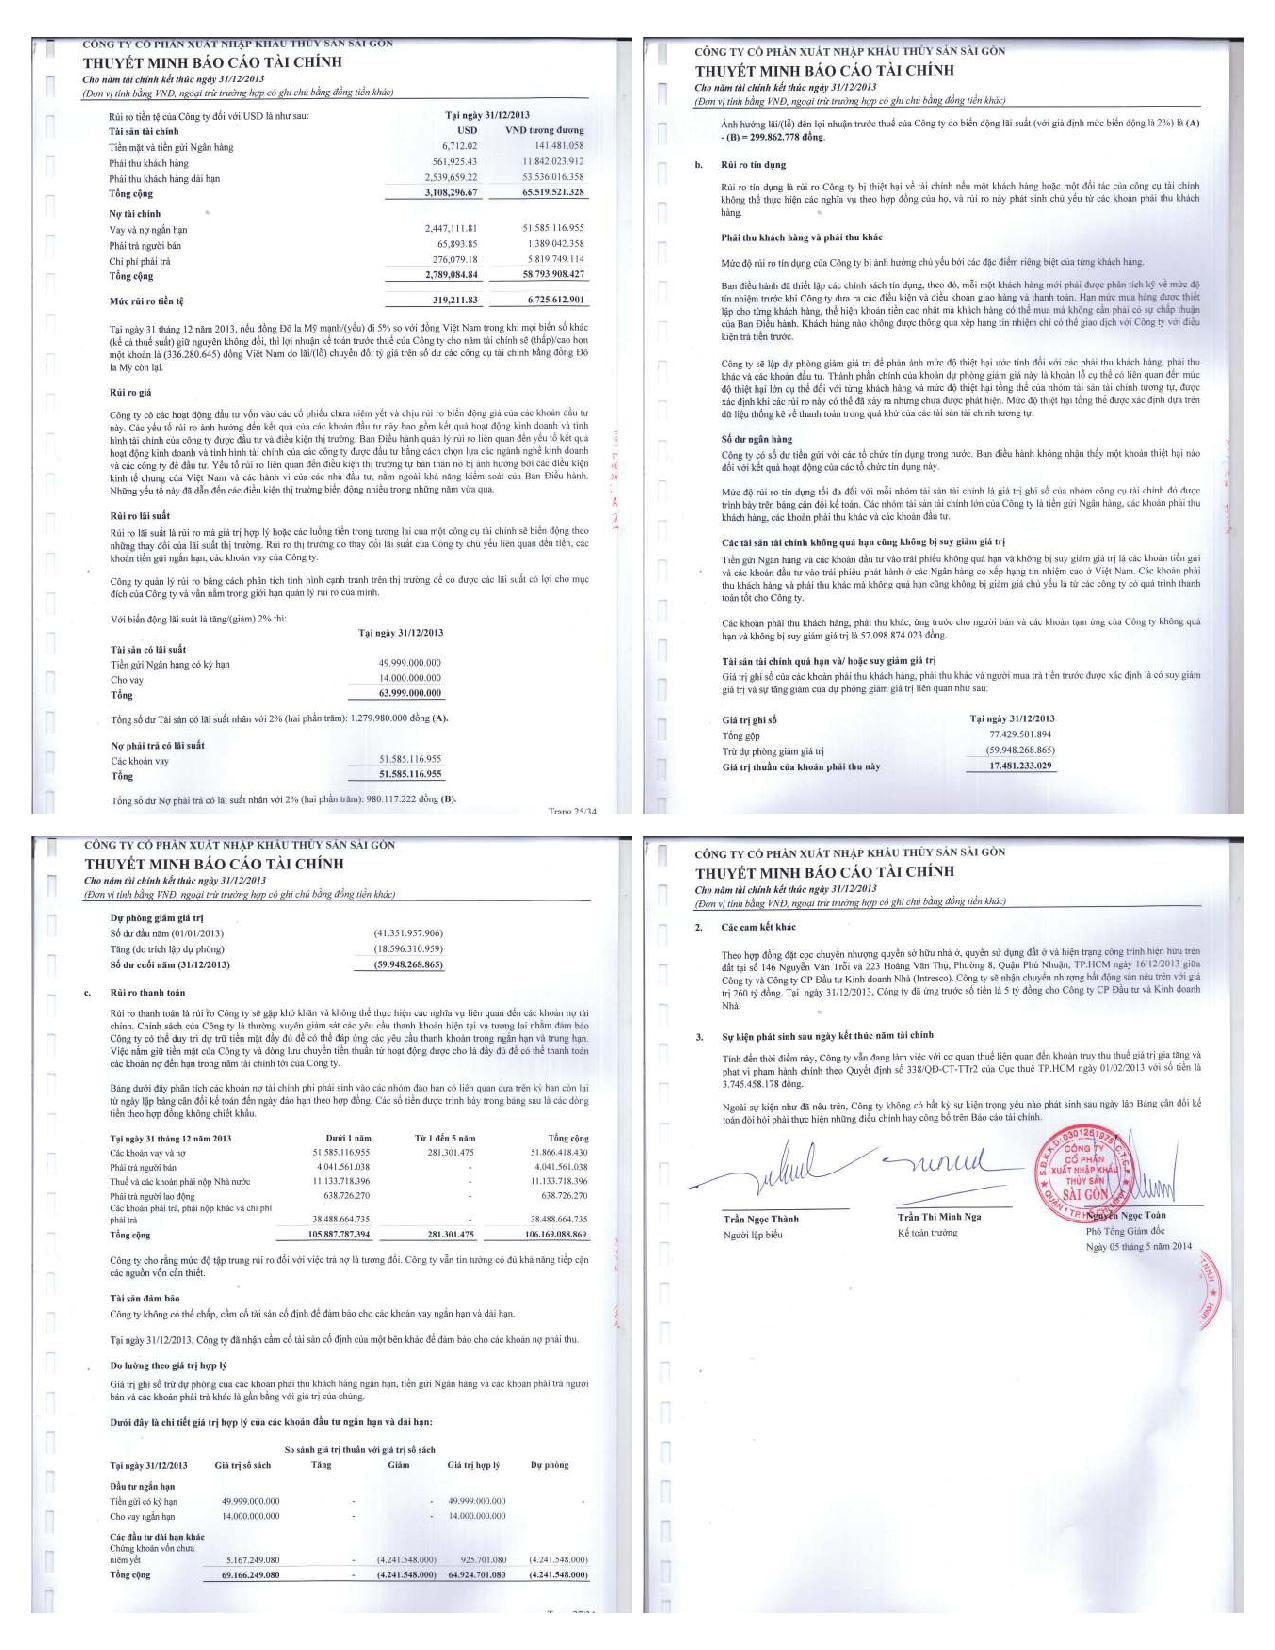 462014359_BC-Tai-Chinh-2013-K.Toan-TS-SG.compressed-page-008